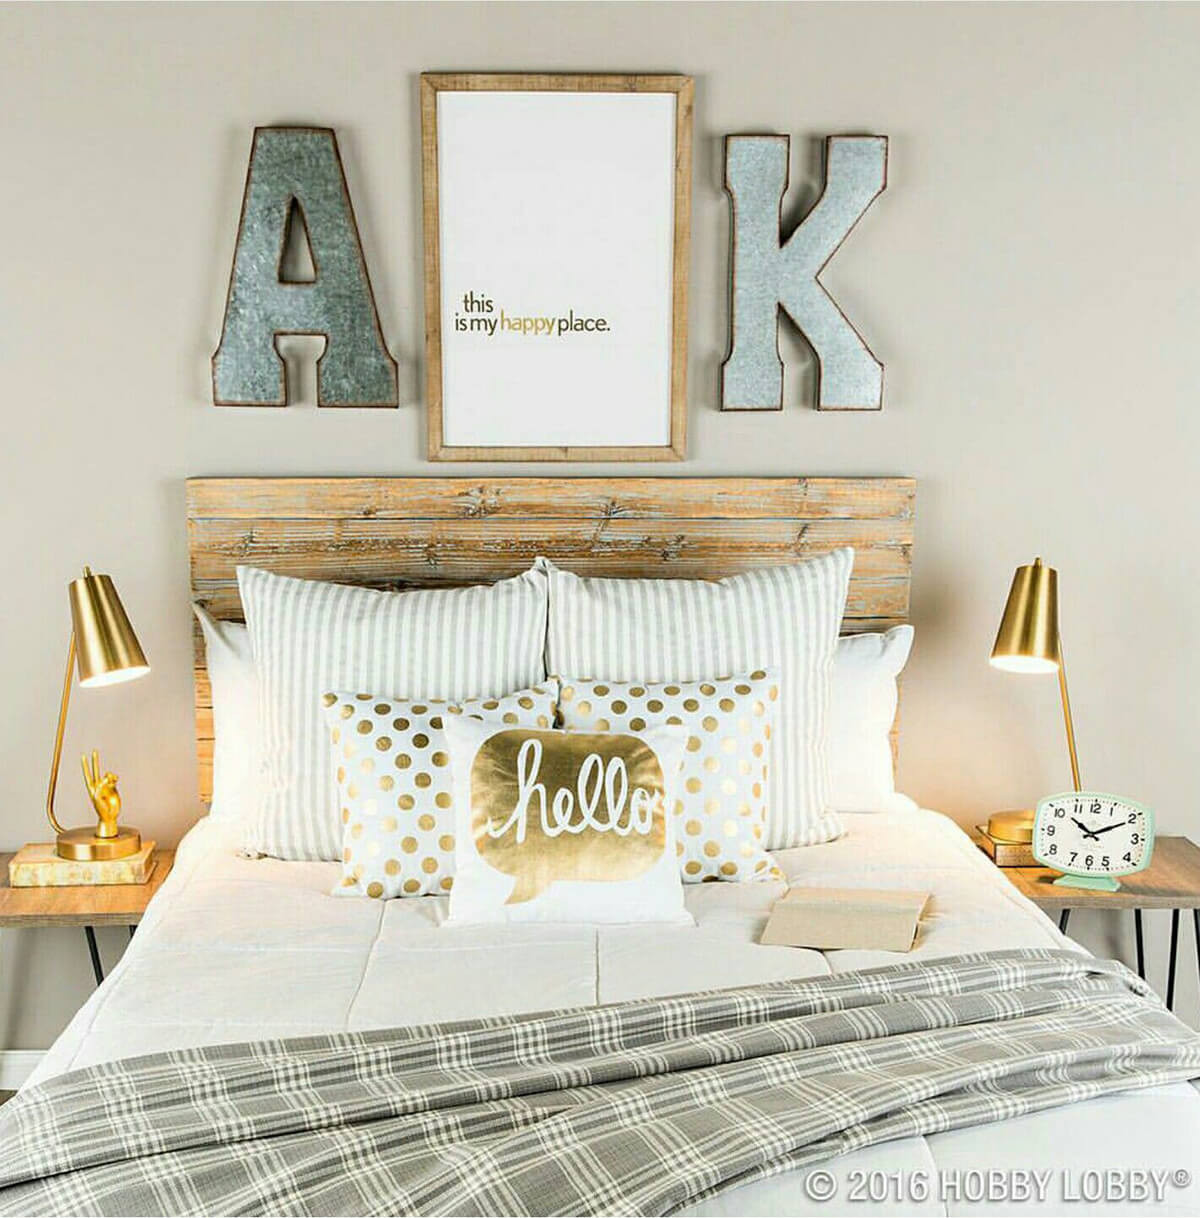 Wall Art Ideas Bedroom 25 Best Bedroom Wall Decor Ideas and Designs for 2019